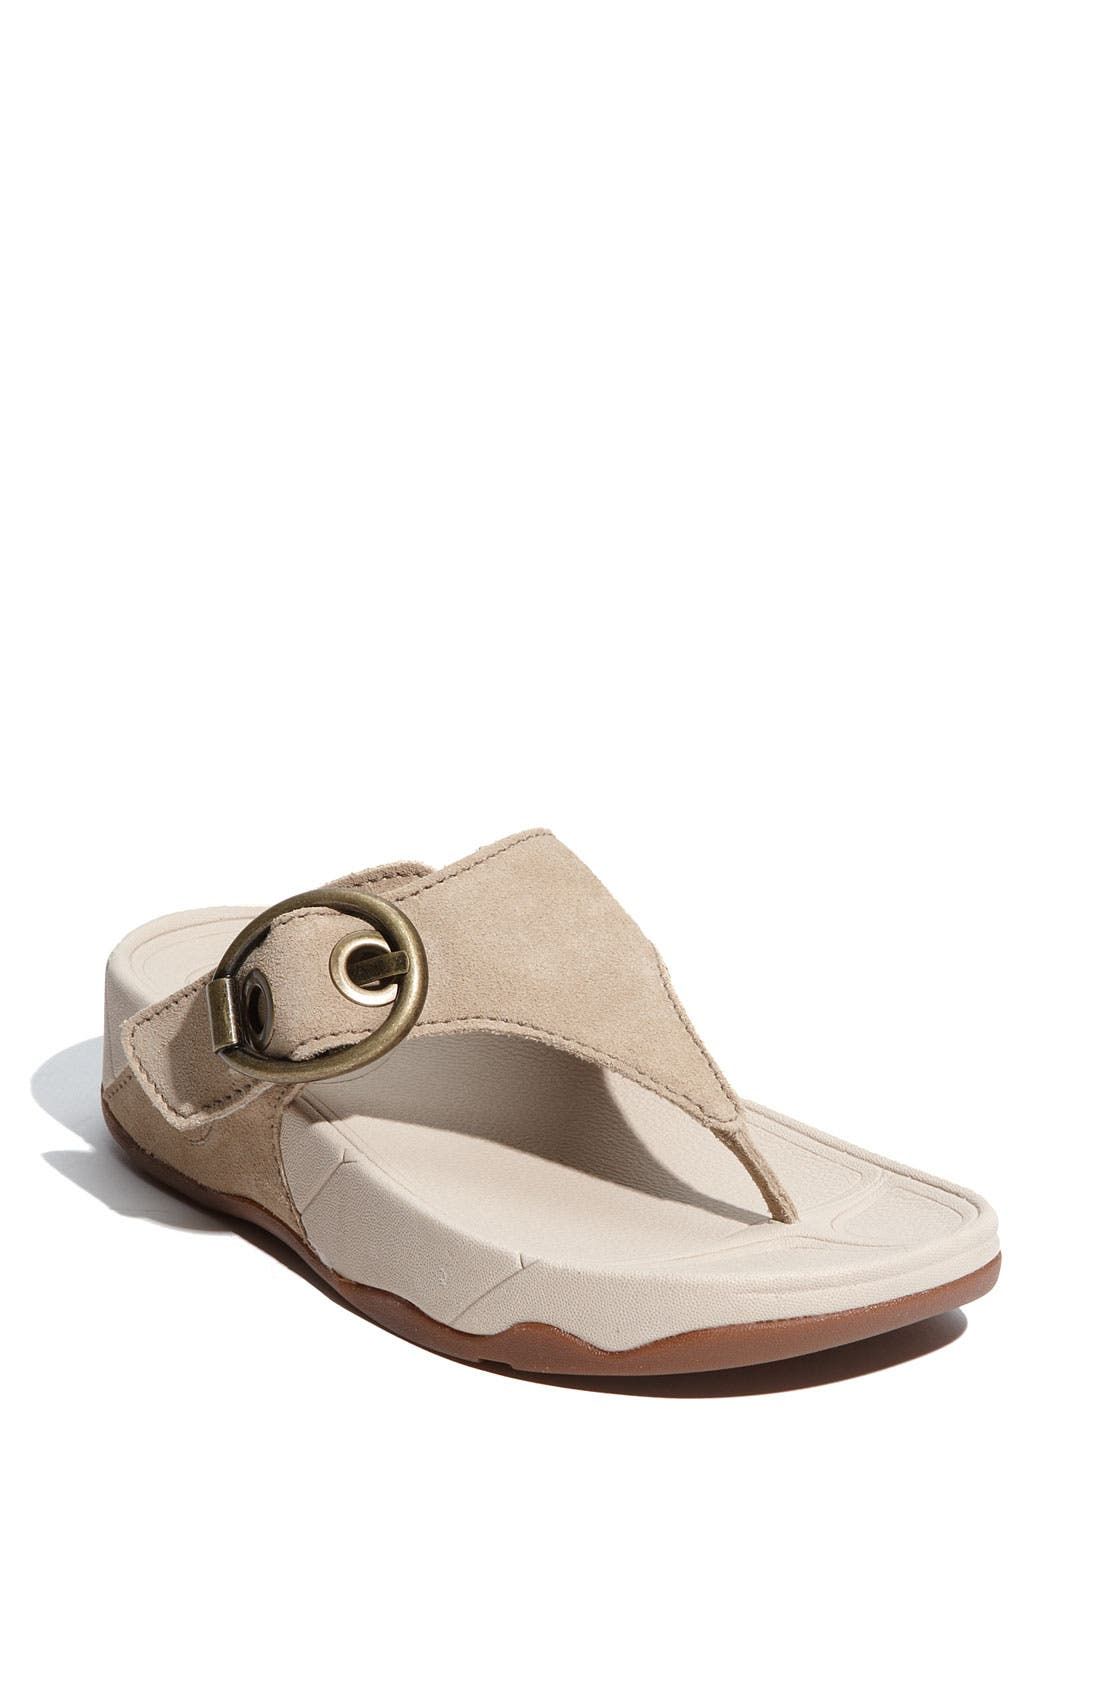 Main Image - FitFlop 'Hooper' Sandal